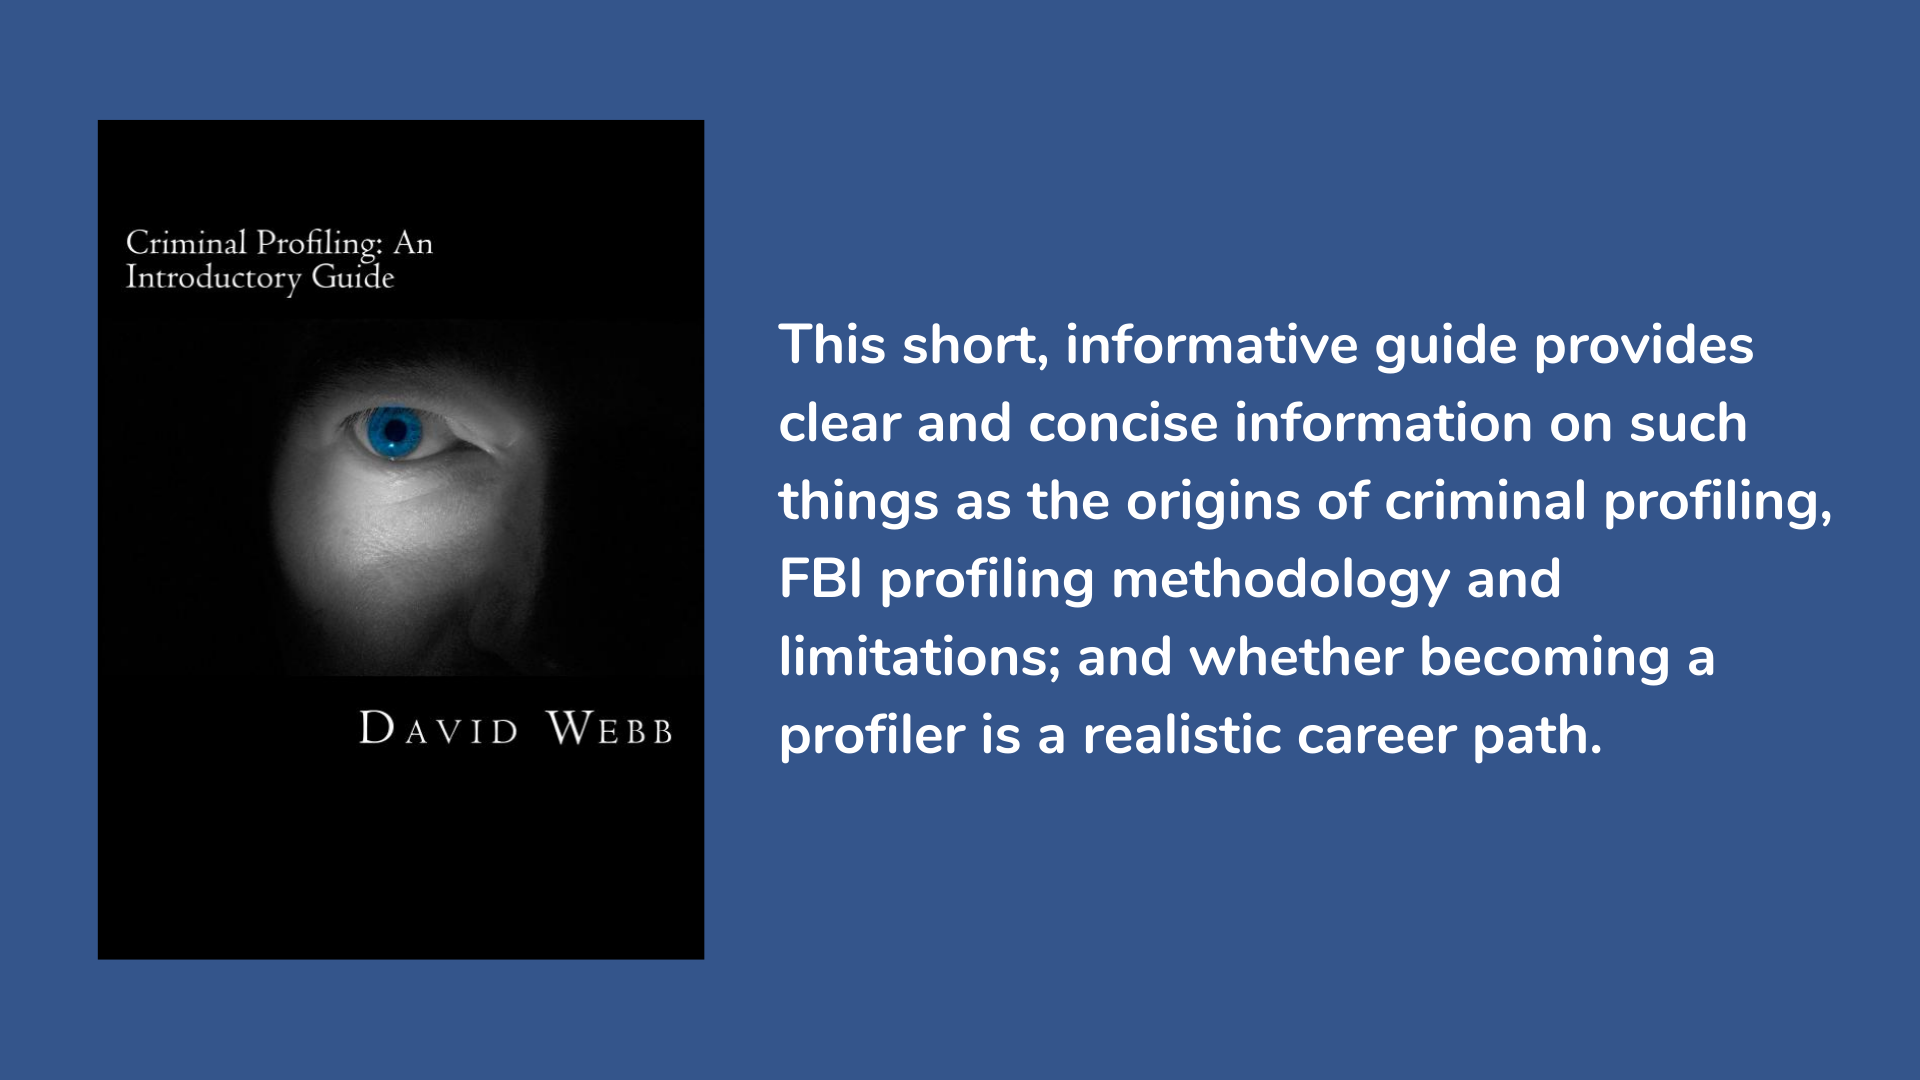 Criminal Profiling: An Introductory Guide by David Webb. Book cover and description.